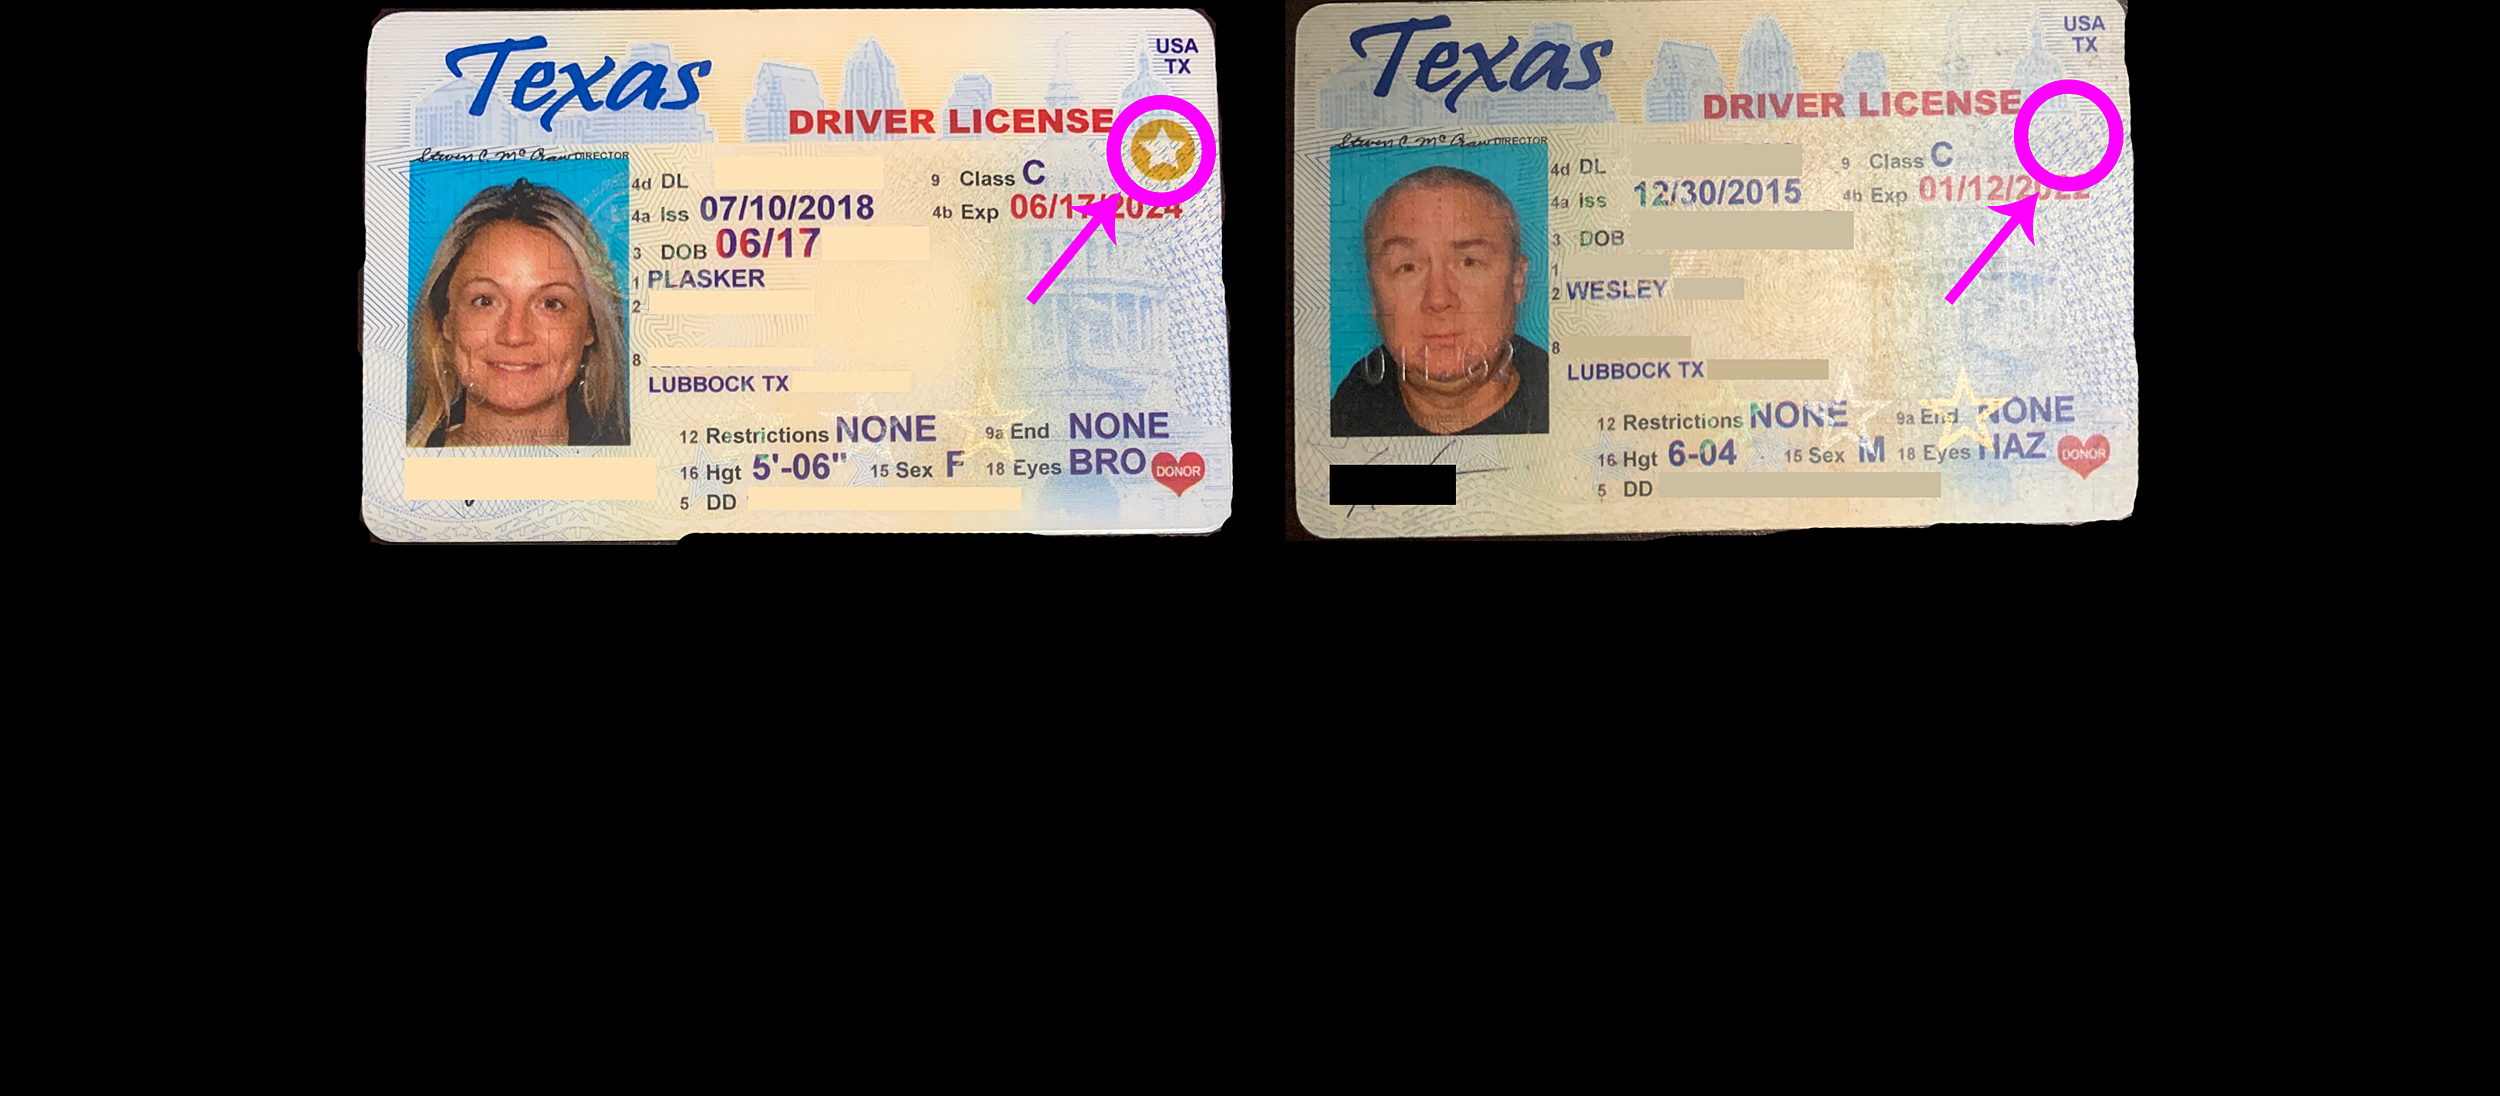 Don't Forget to Check Your Texas Driver's License for a Gold Star